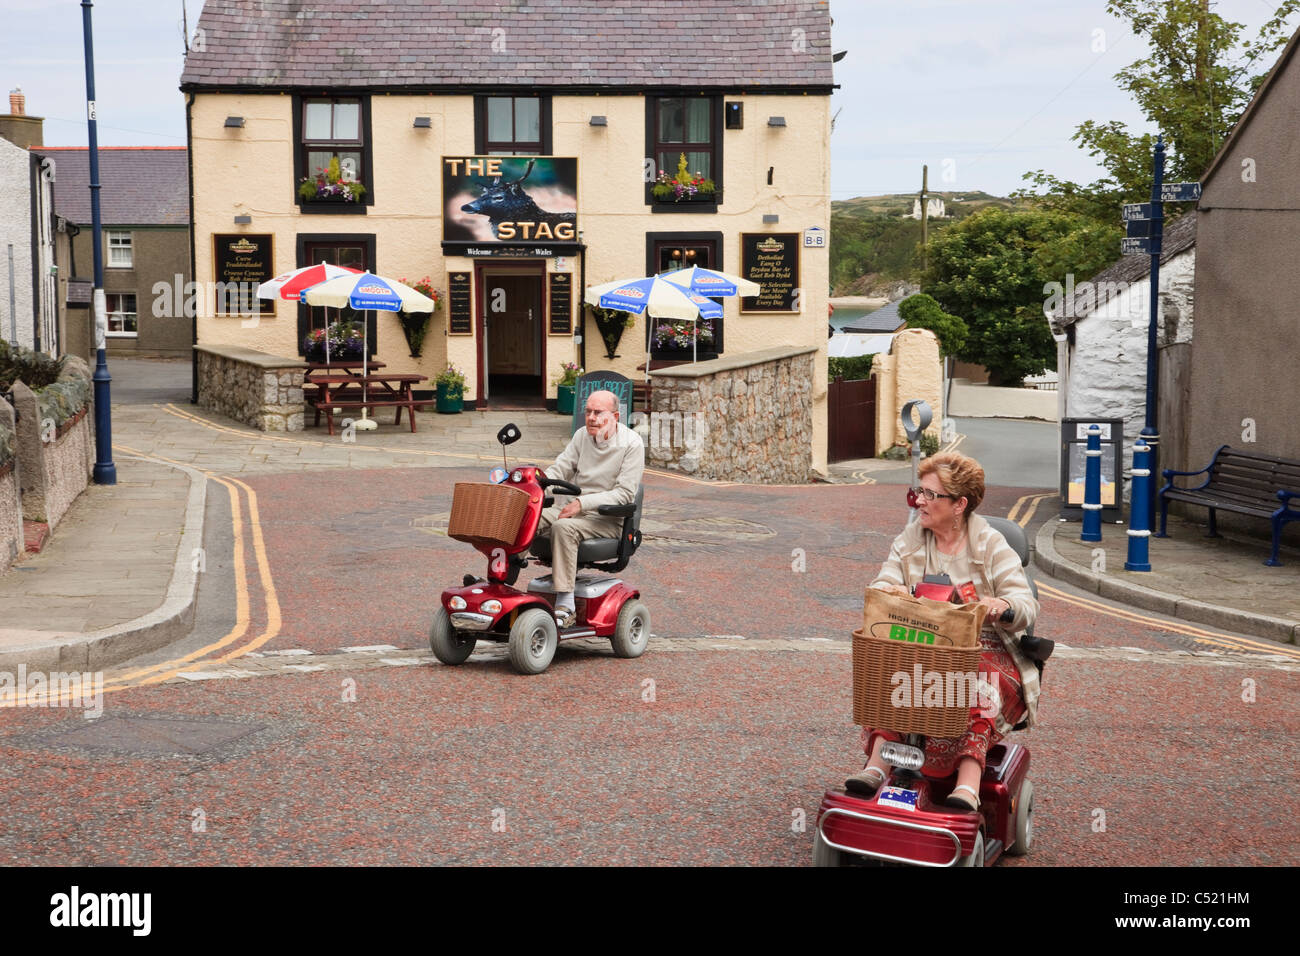 Two seniors elderly people riding on electric mobility scooters crossing a village street. North Wales, UK, Britain. - Stock Image